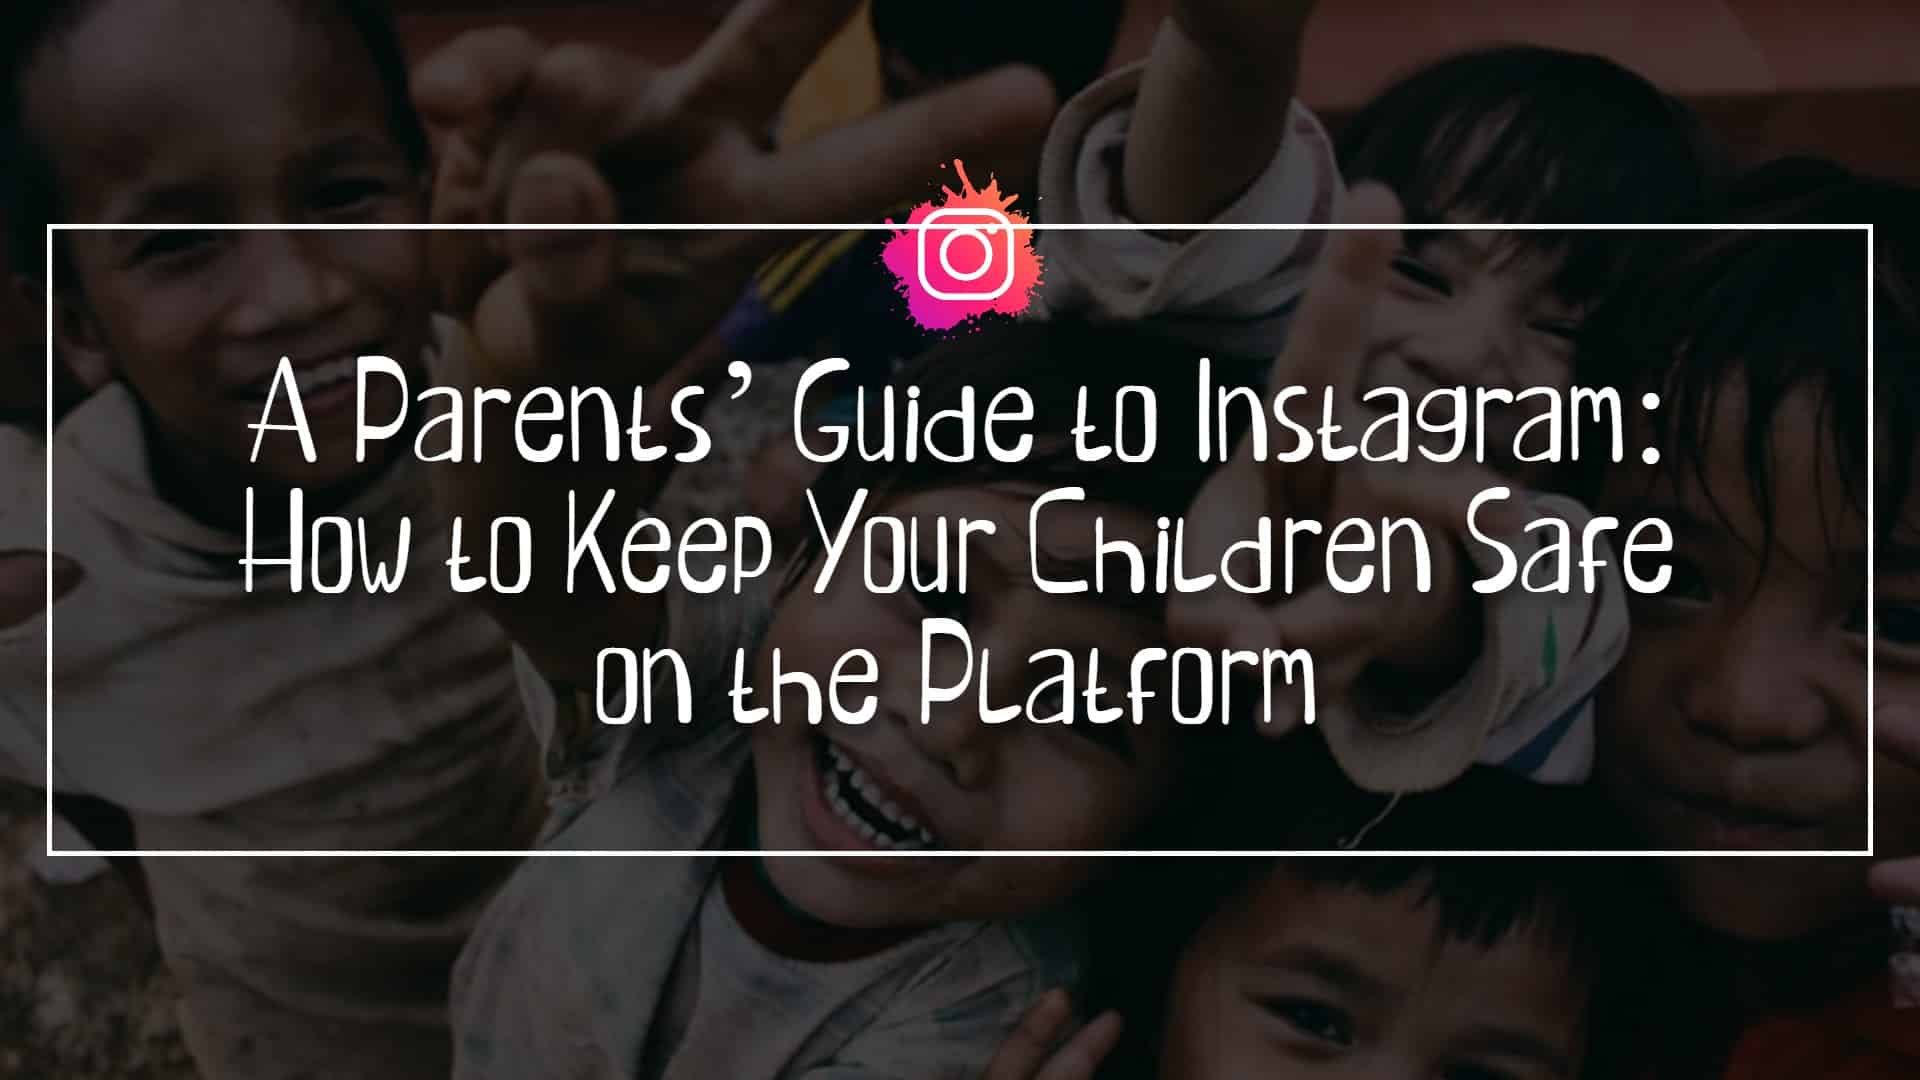 A-Parents-Guide-to-Instagram_-How-to-Keep-Your-Children-Safe-on-the-Platform.jpg